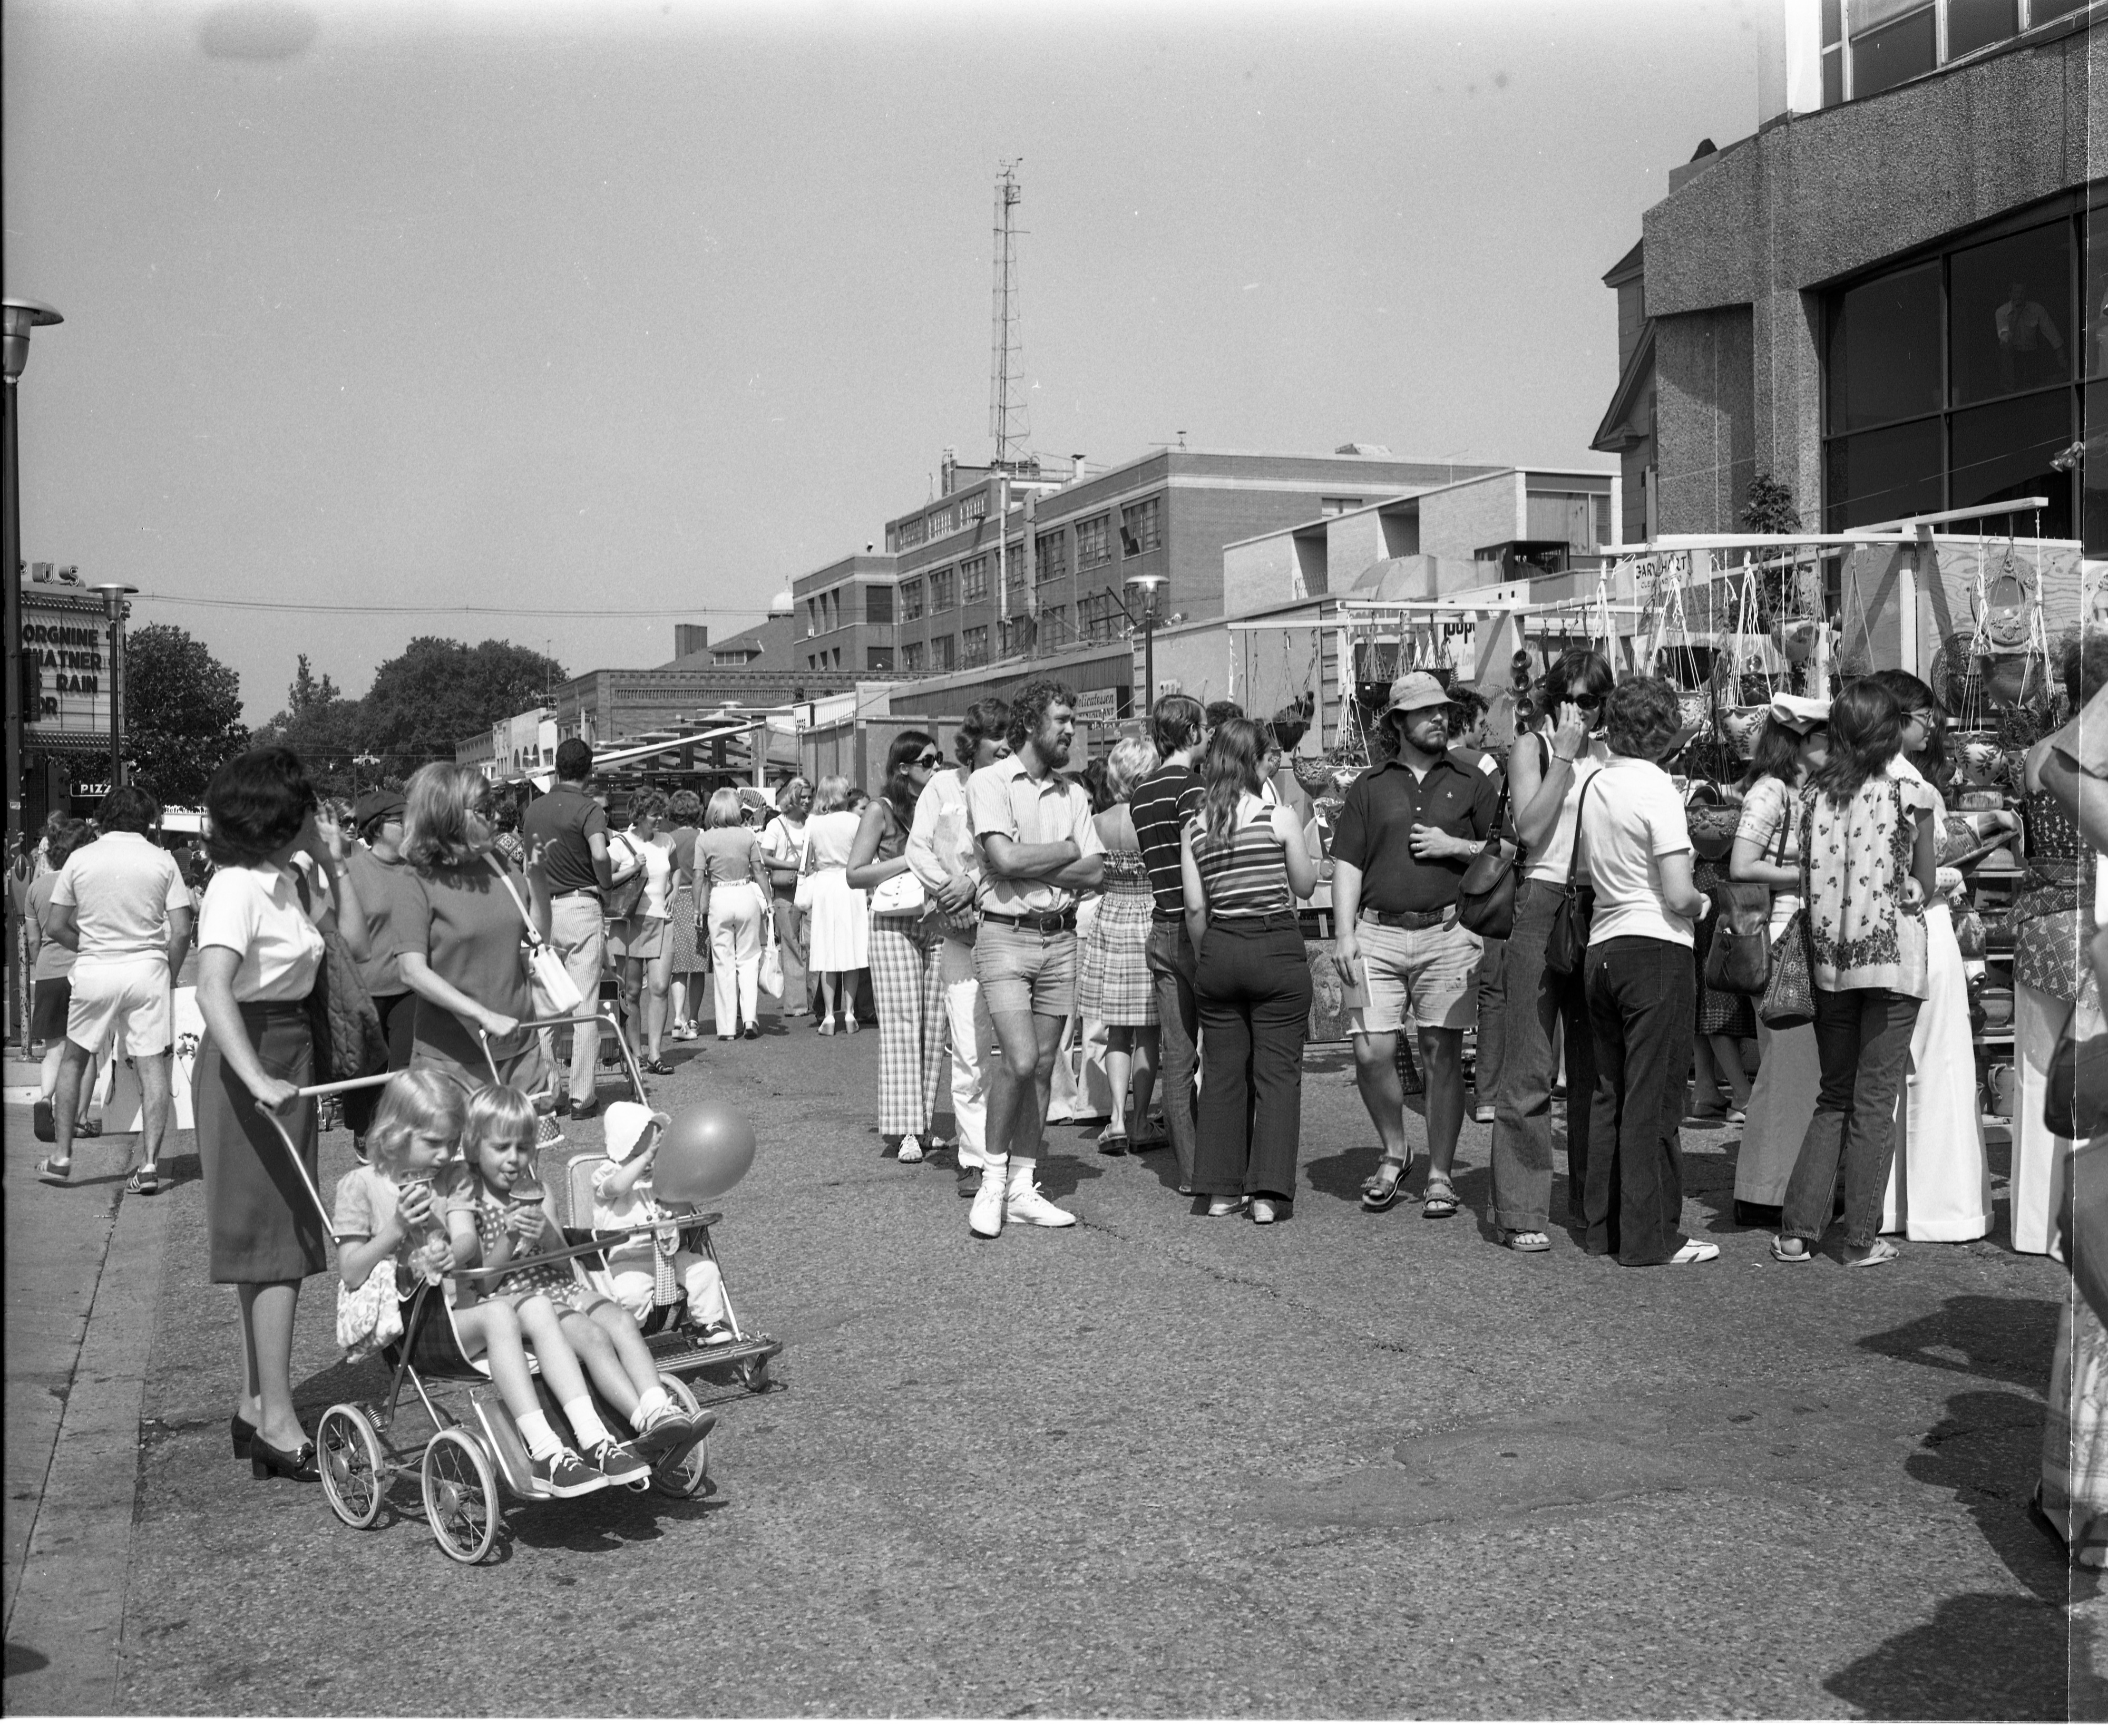 Crowds At The Ann Arbor Art Fair, July 17, 1975 image